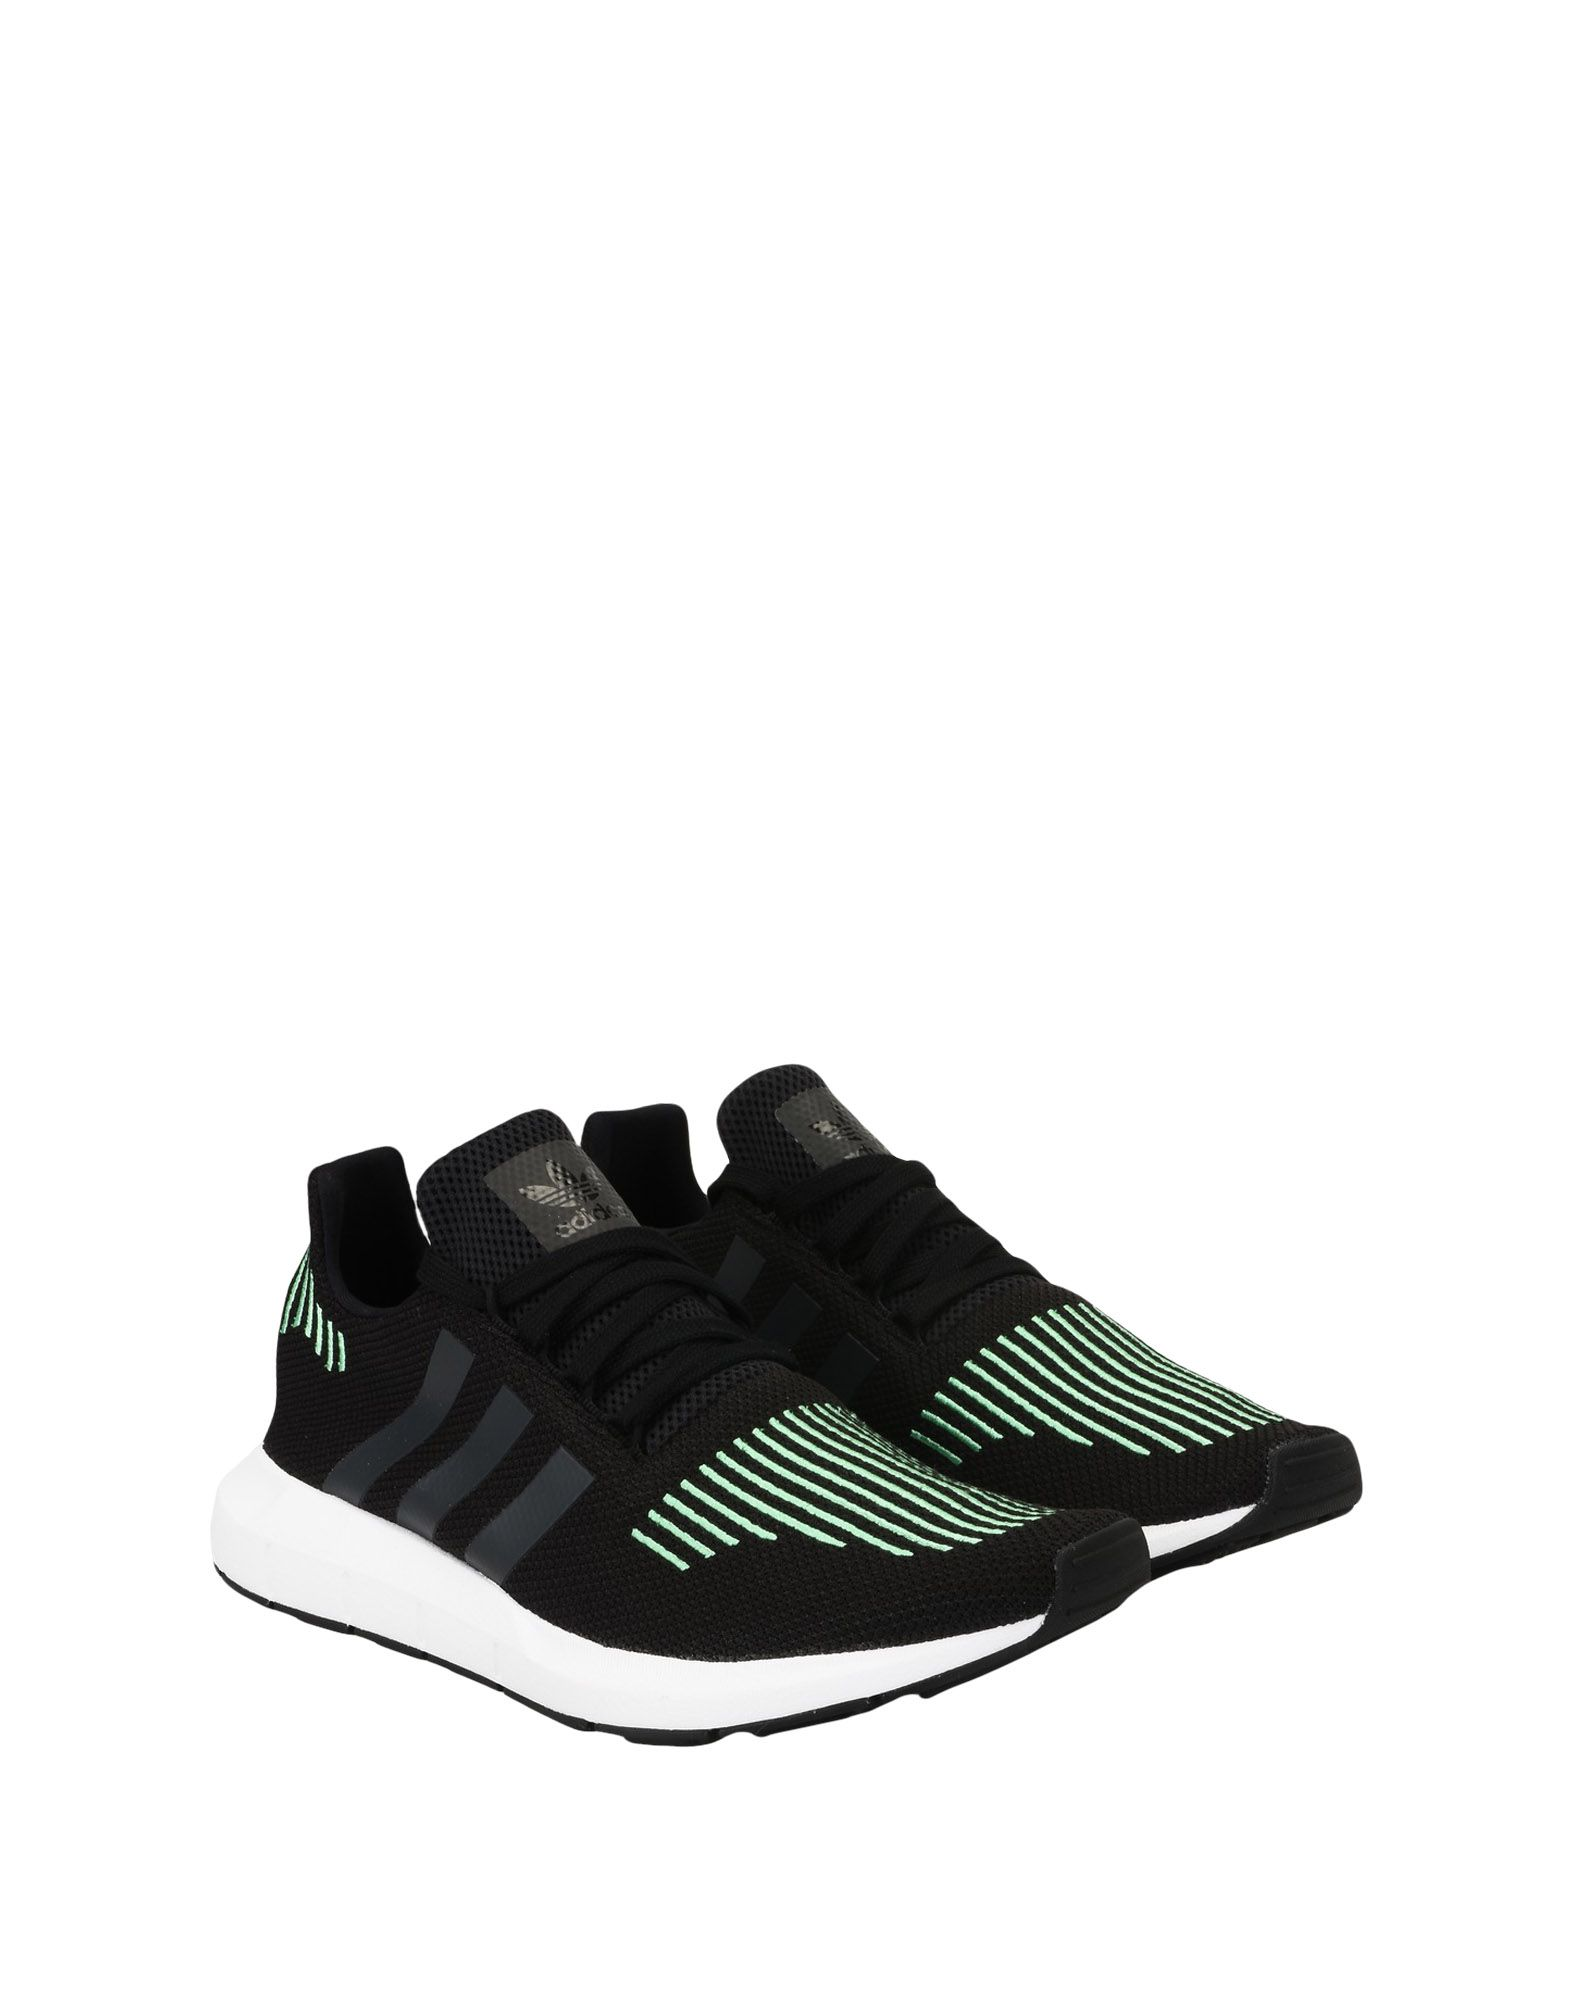 Adidas Originals Swift Run - Sneakers Sneakers Sneakers - Men Adidas Originals Sneakers online on  United Kingdom - 11325158PK d8da54